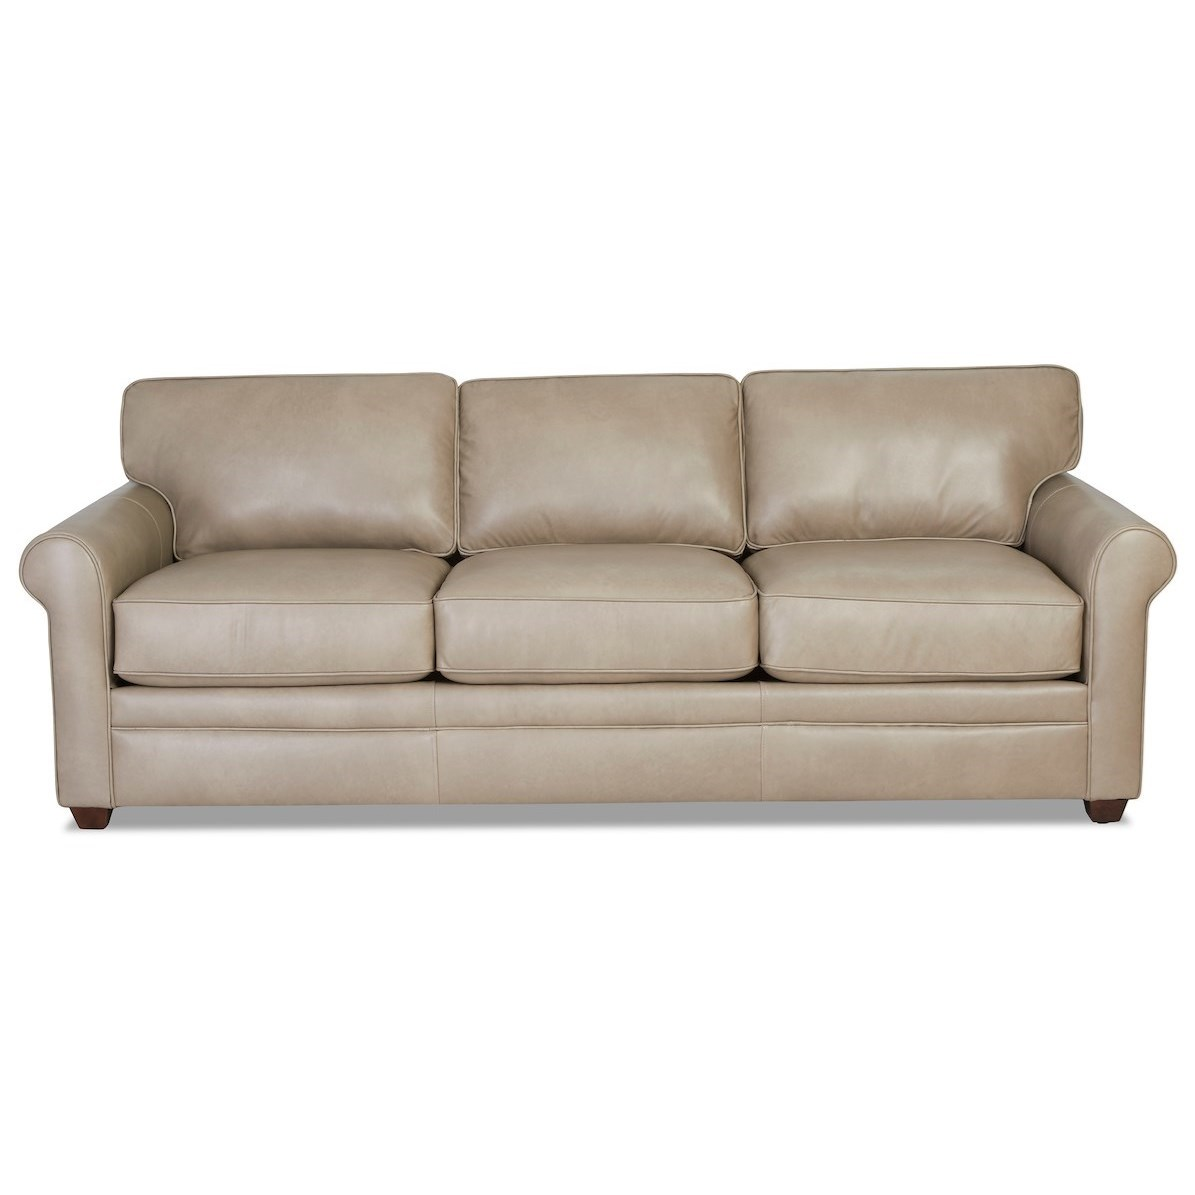 Casual Leather Sofa with Rolled Arms